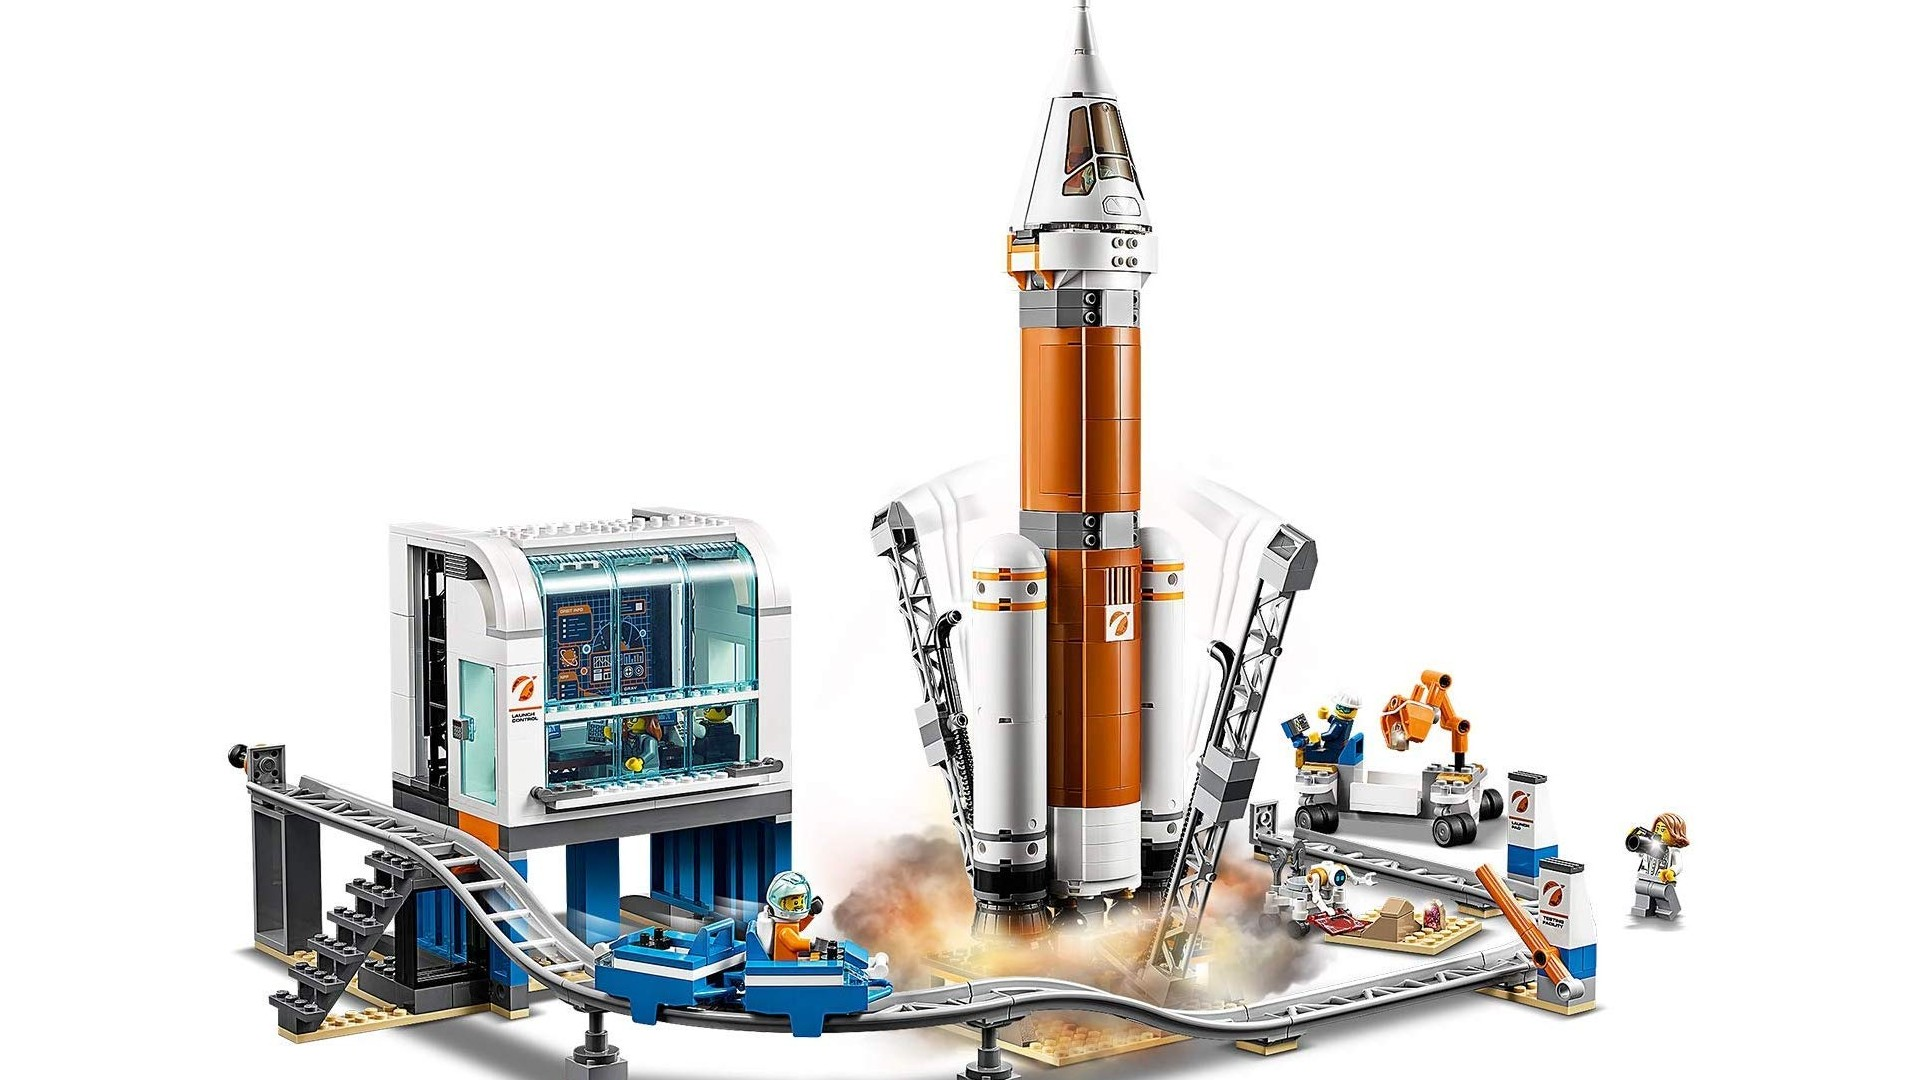 Best Lego City sets: Deep Space Rocket Launcher